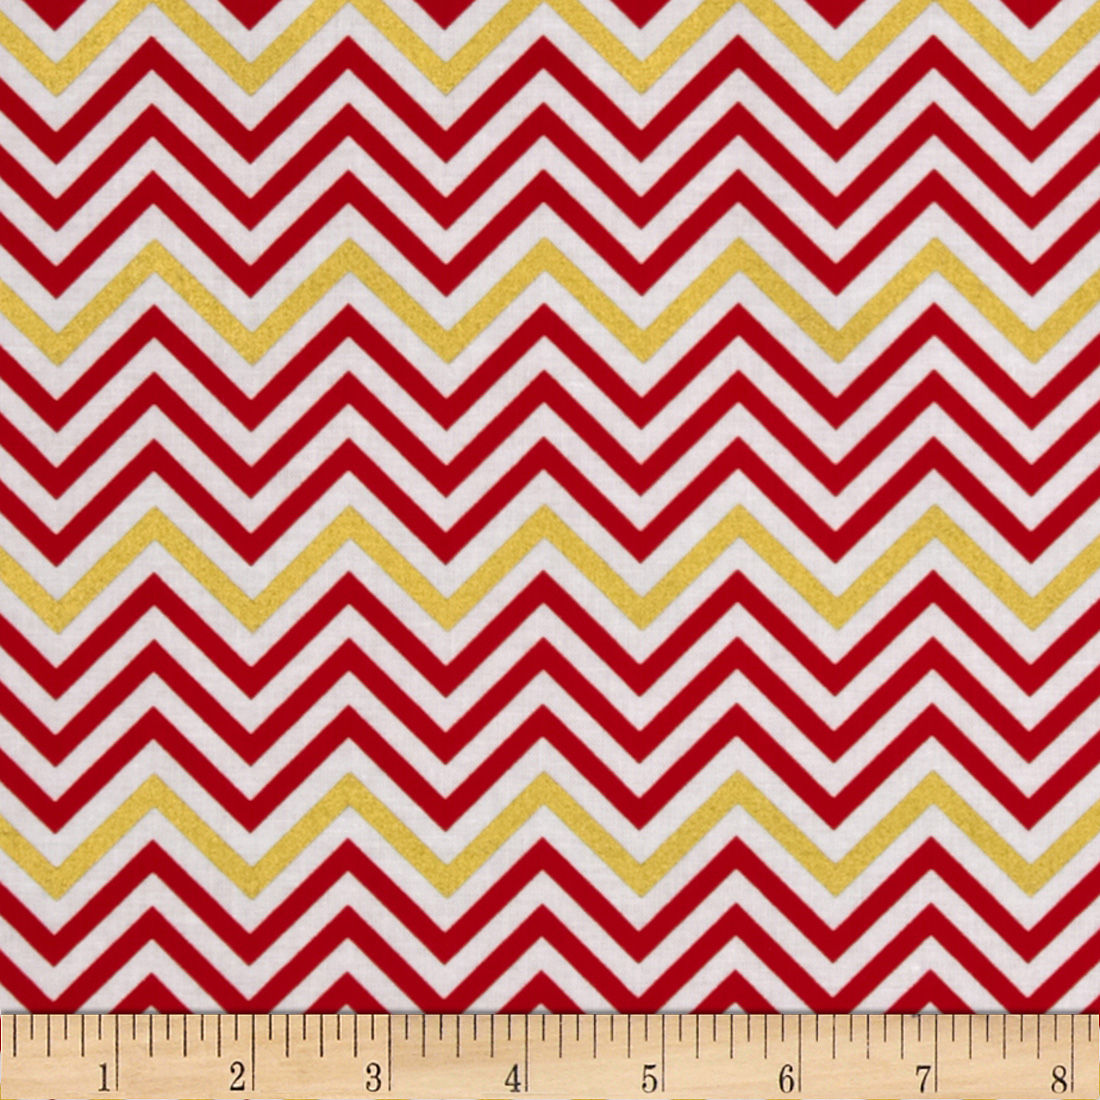 Remix Metallic Small Chevron Flame Fabric